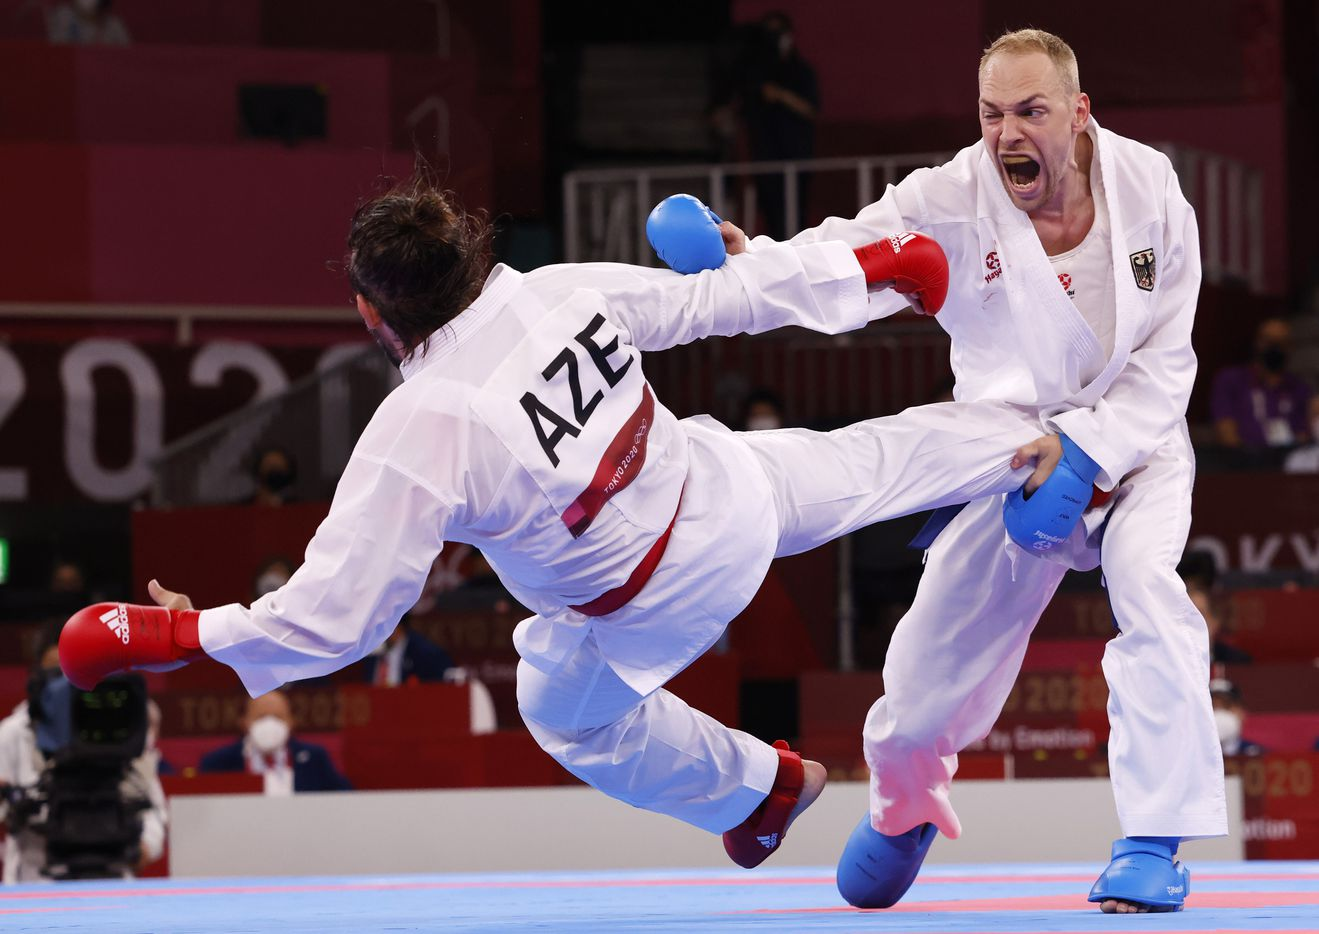 Germany's Noah Bitsch competes against Azerbaijan's Rafael Aghayev during the karate men's kumite -75kg elimination round at the postponed 2020 Tokyo Olympics at Nippon Budokan, on Friday, August 6, 2021, in Tokyo, Japan. Aghayev defeated Bitsch 2-1. (Vernon Bryant/The Dallas Morning News)